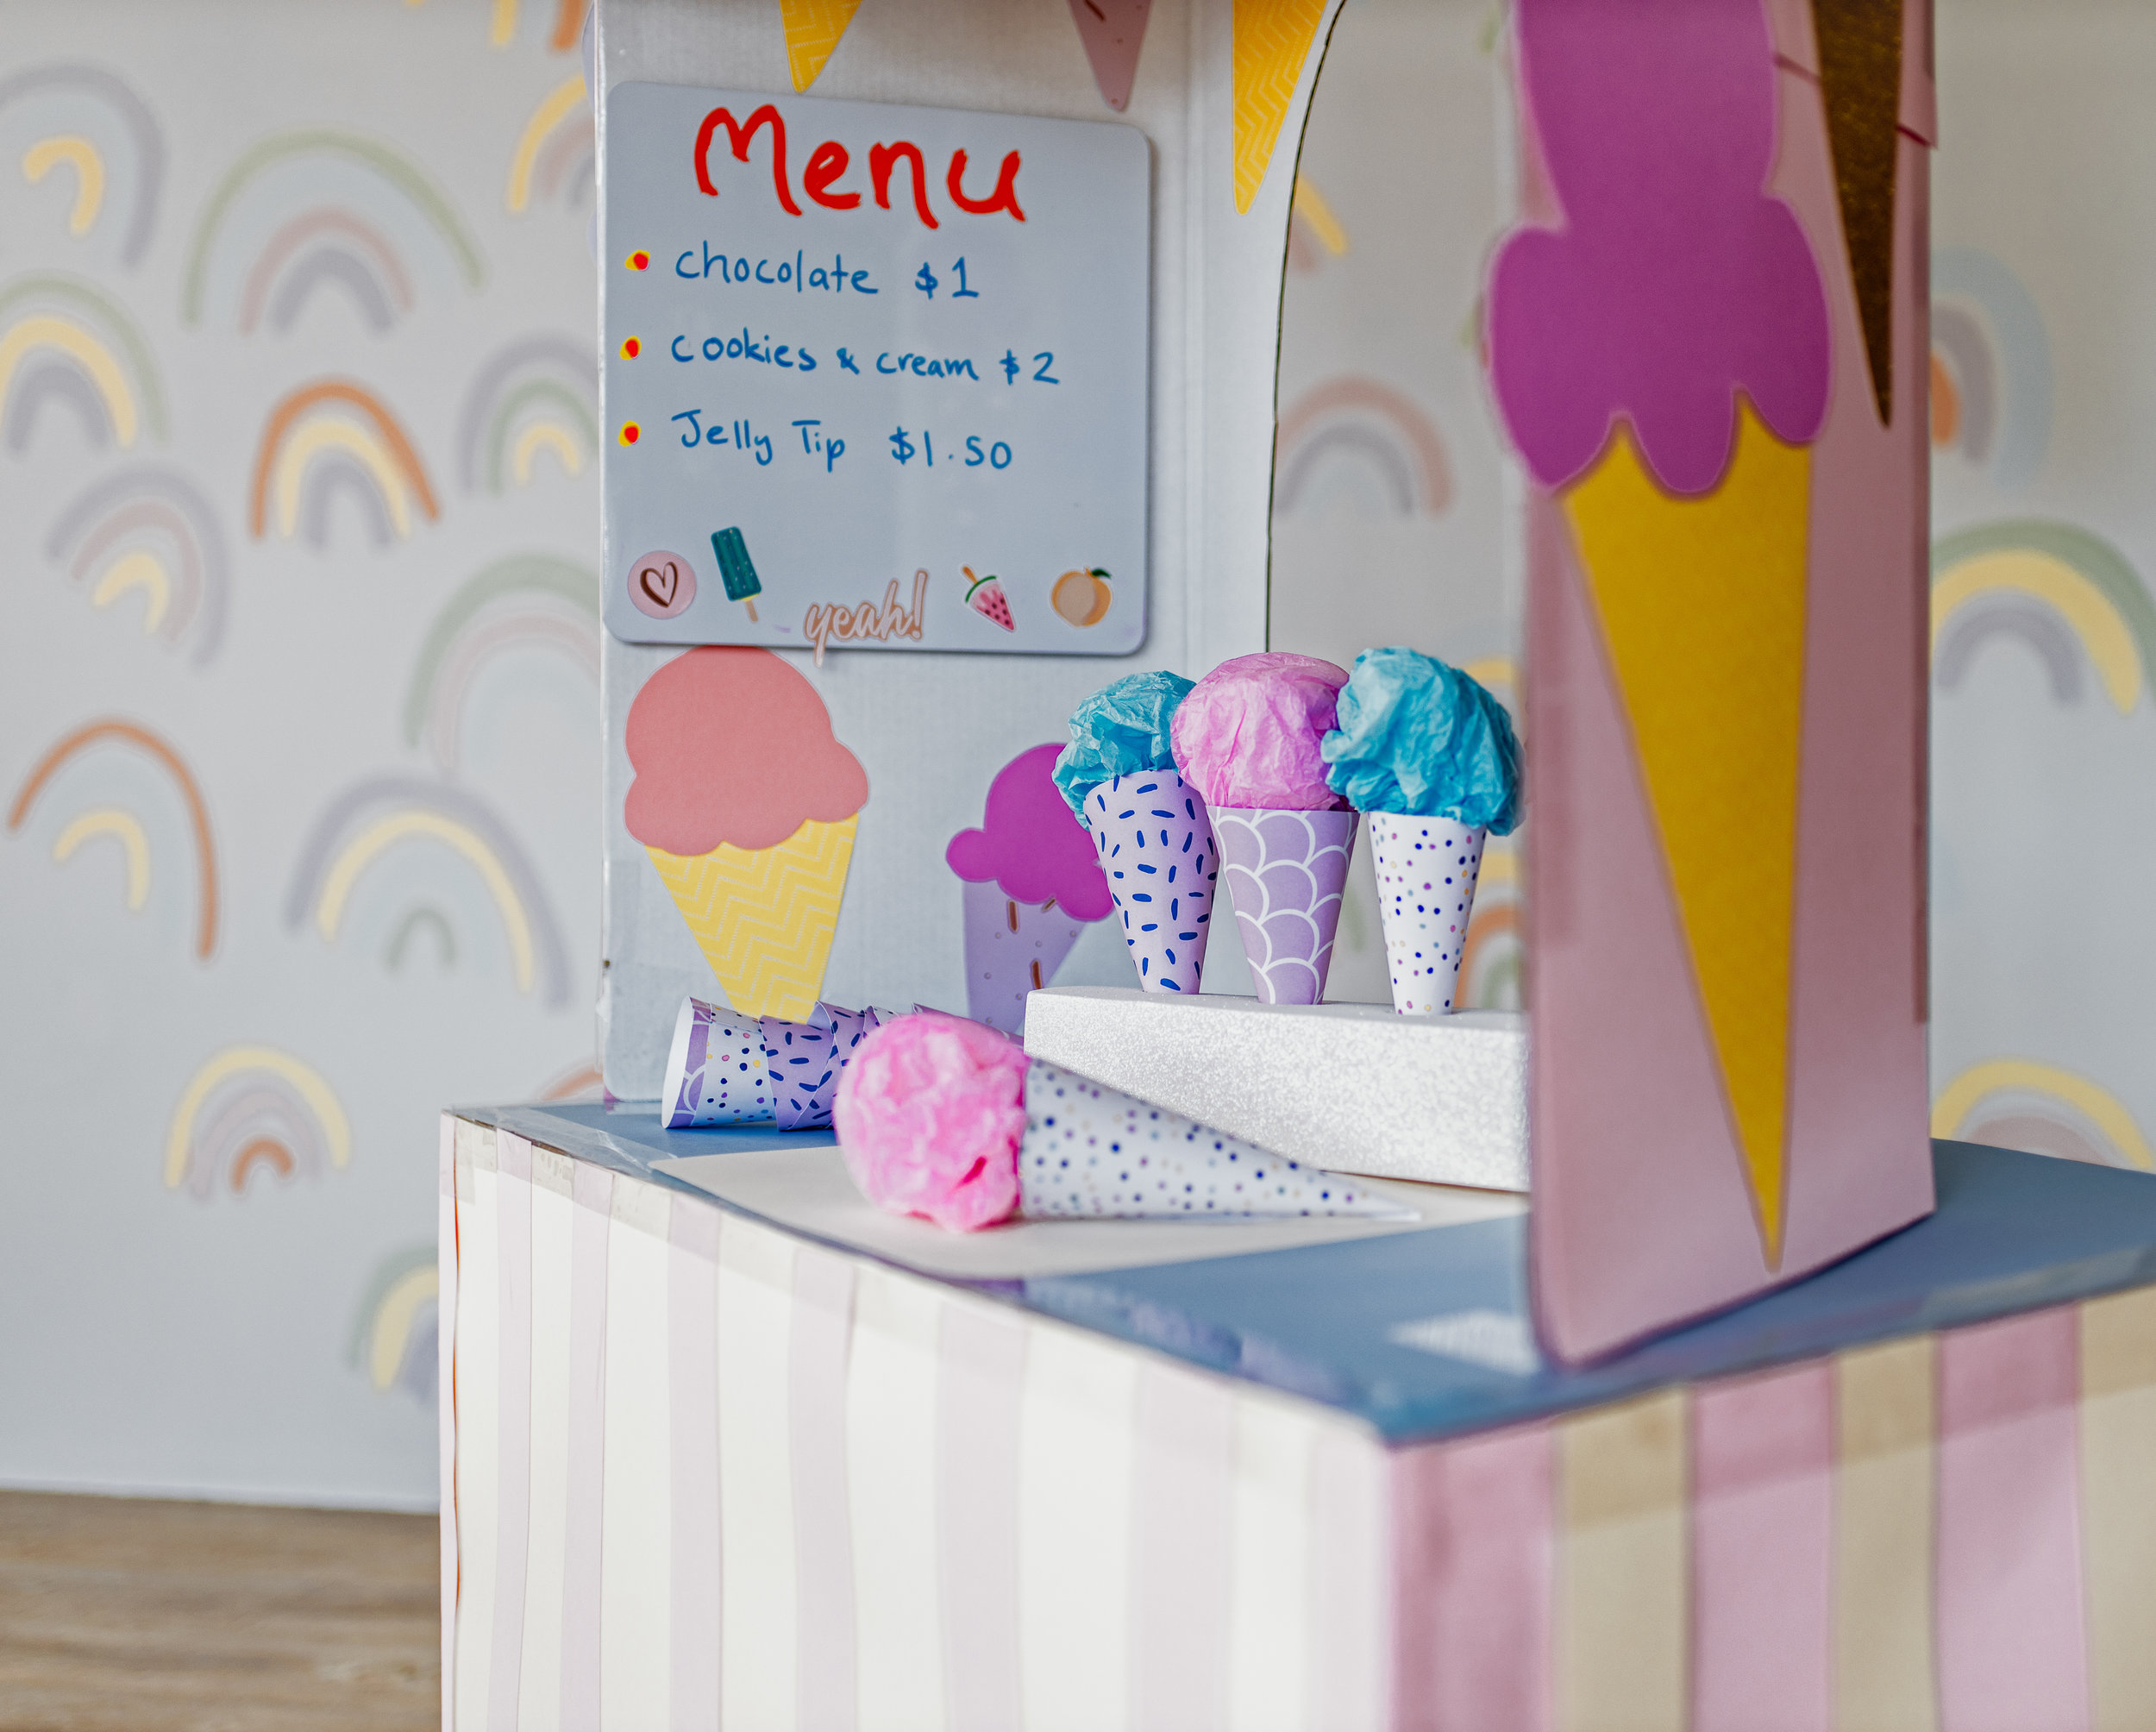 DIY Ice Cream Shop by CLever Poppy cones1.jpg